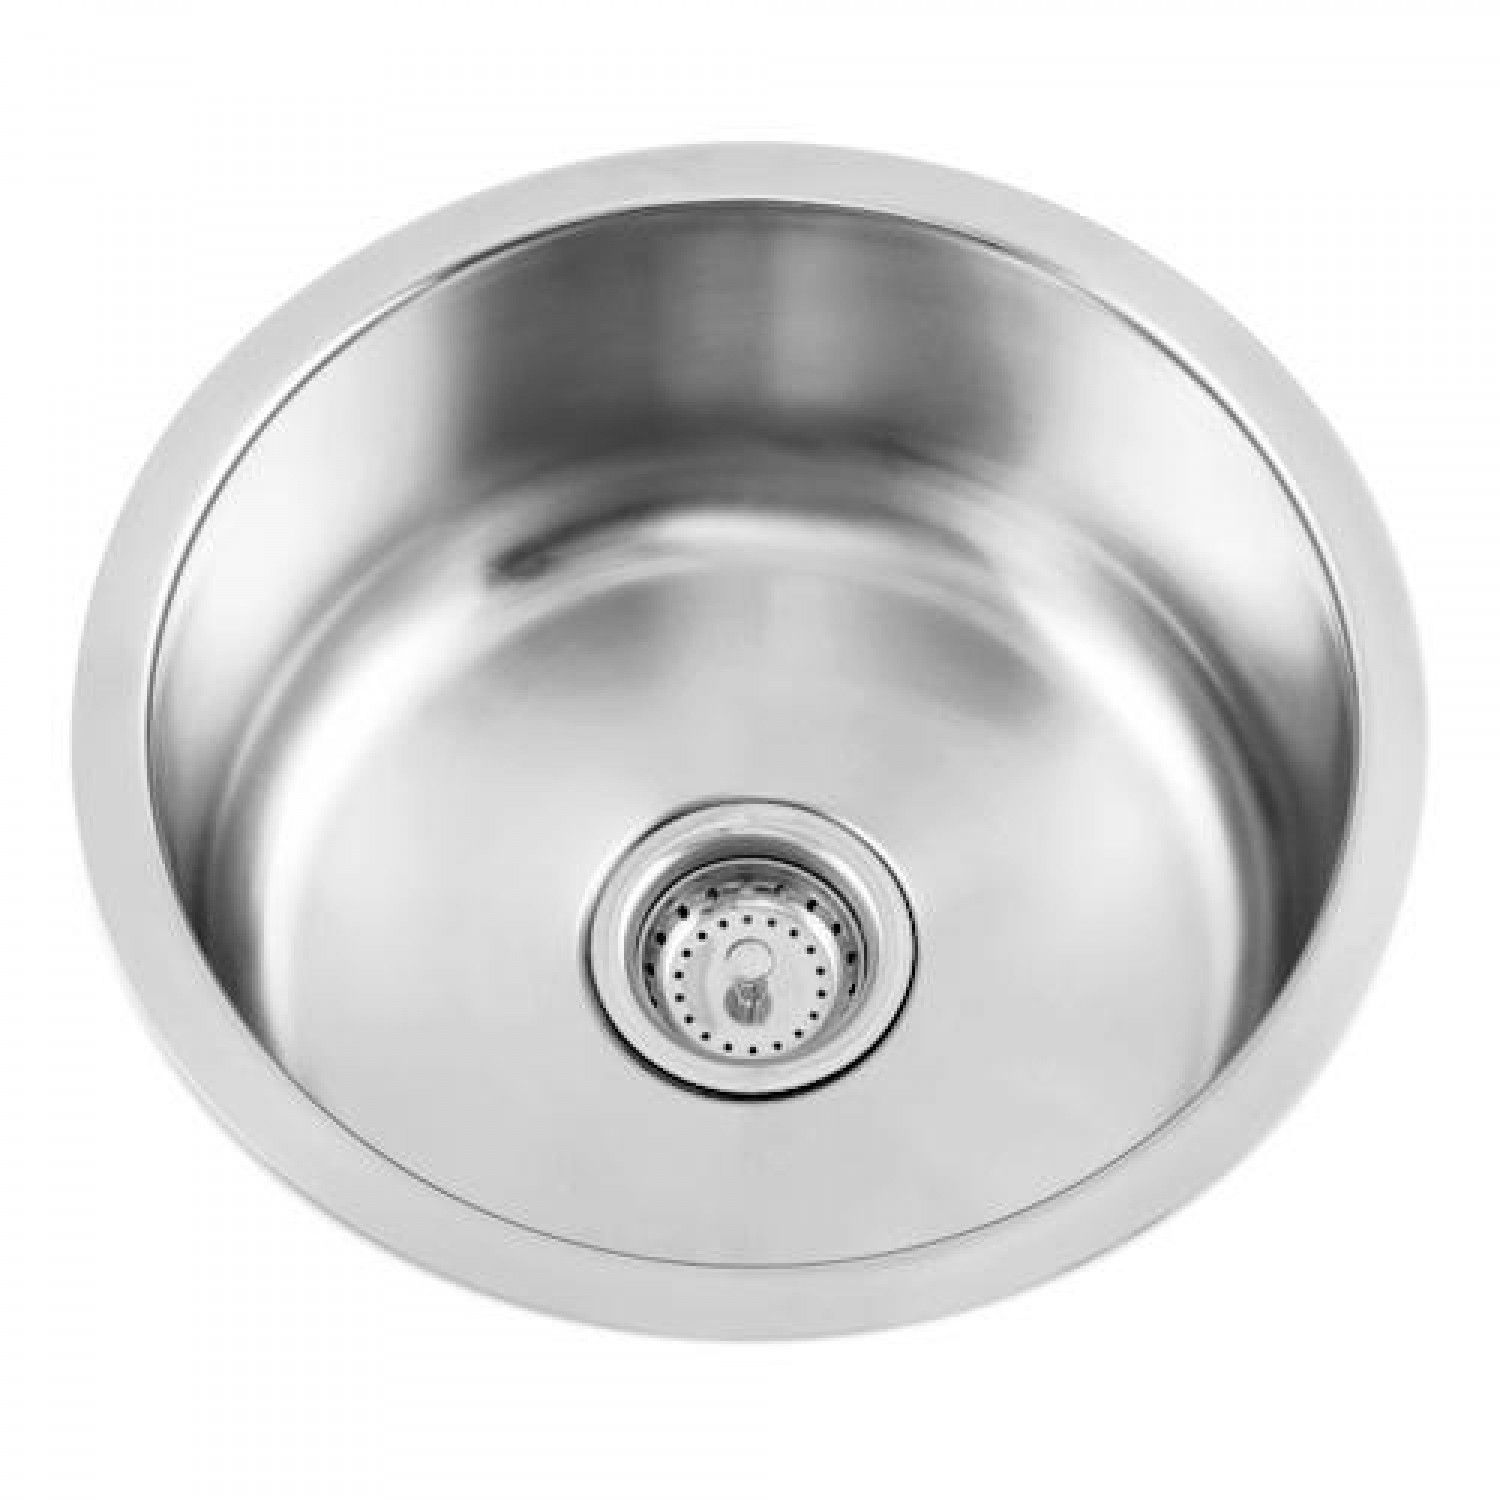 Beau Round Stainless Steel Undermount Bar Sink